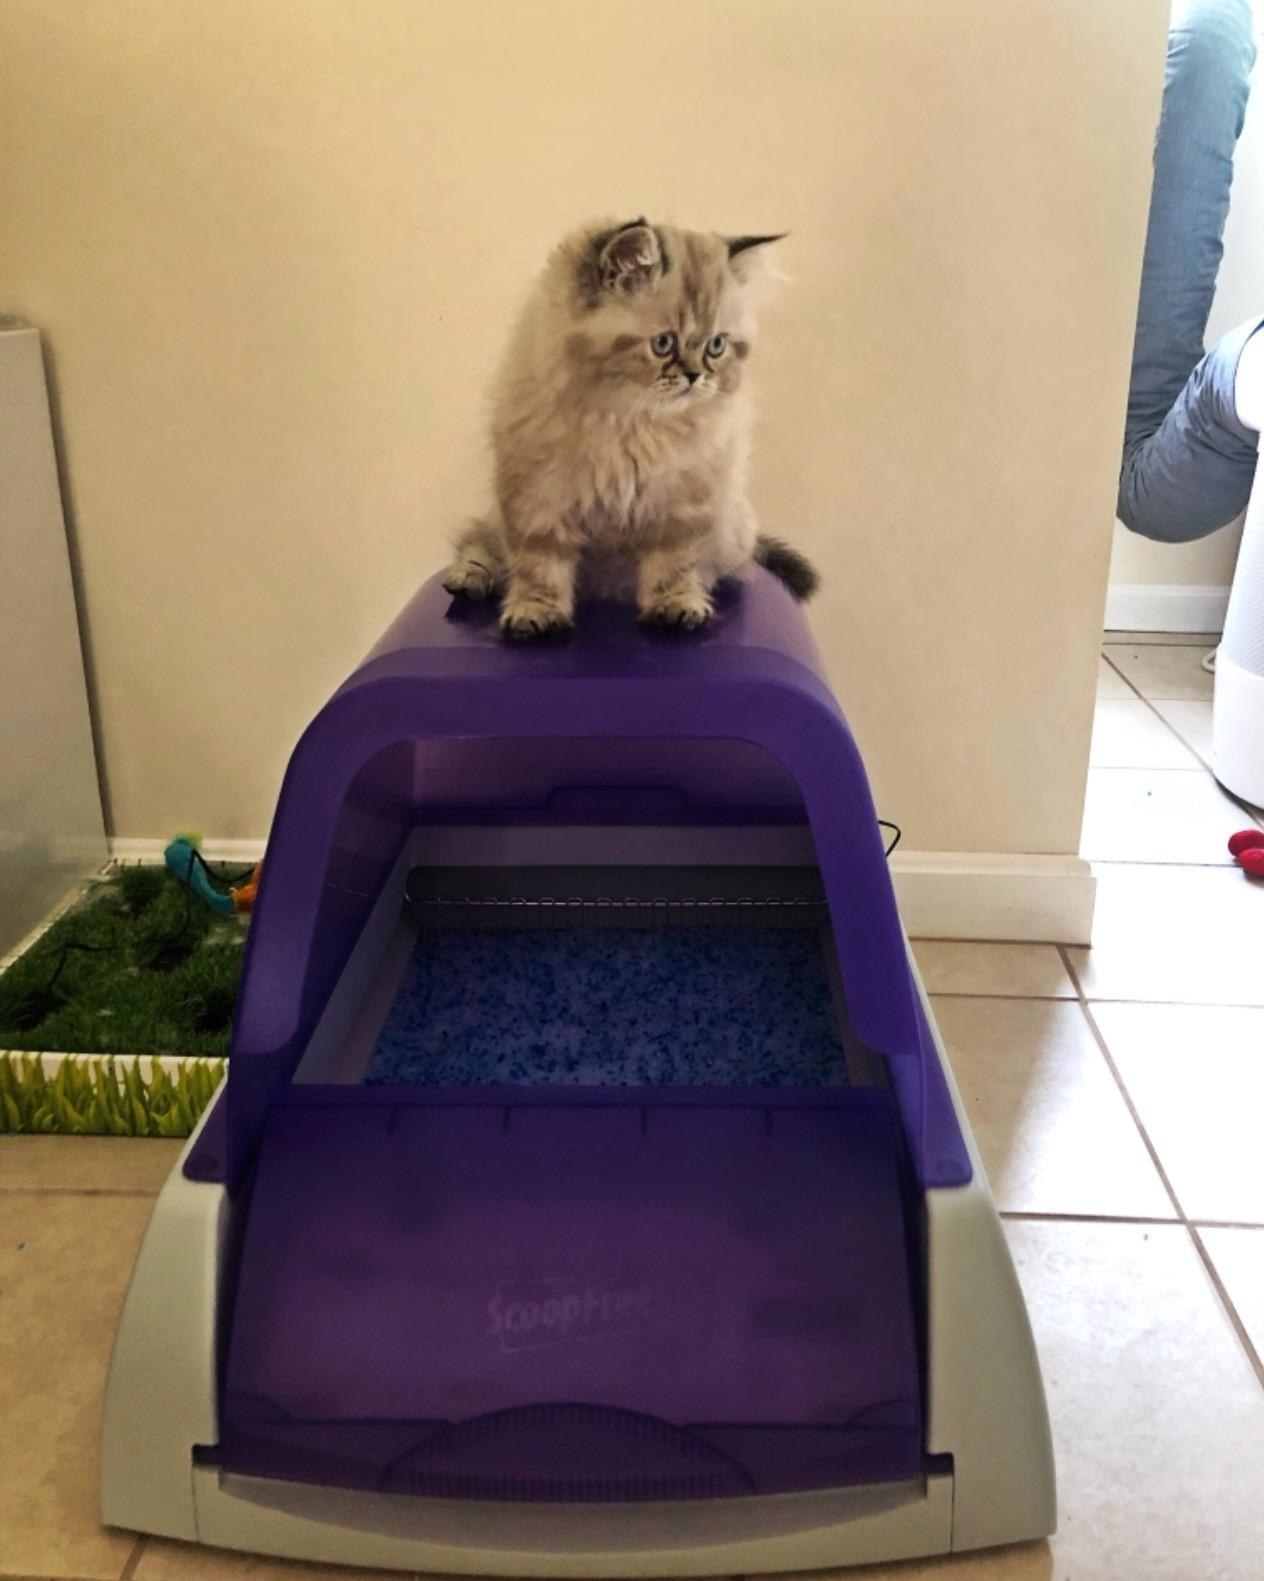 reviewer photo showing their cat sitting atop the self-cleaning litter box